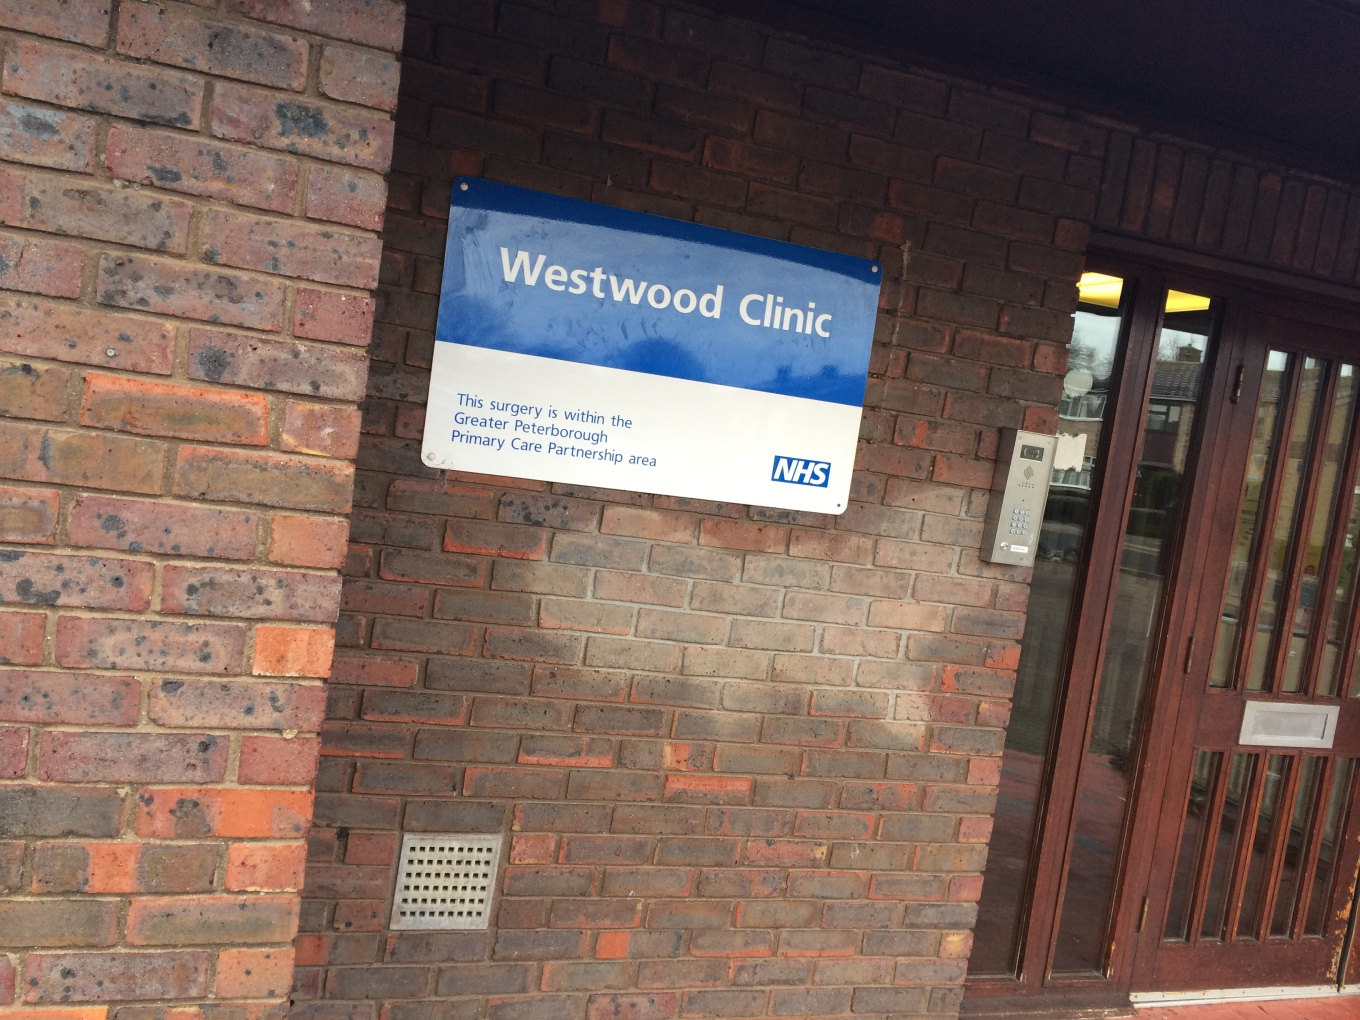 Westwood Clinic